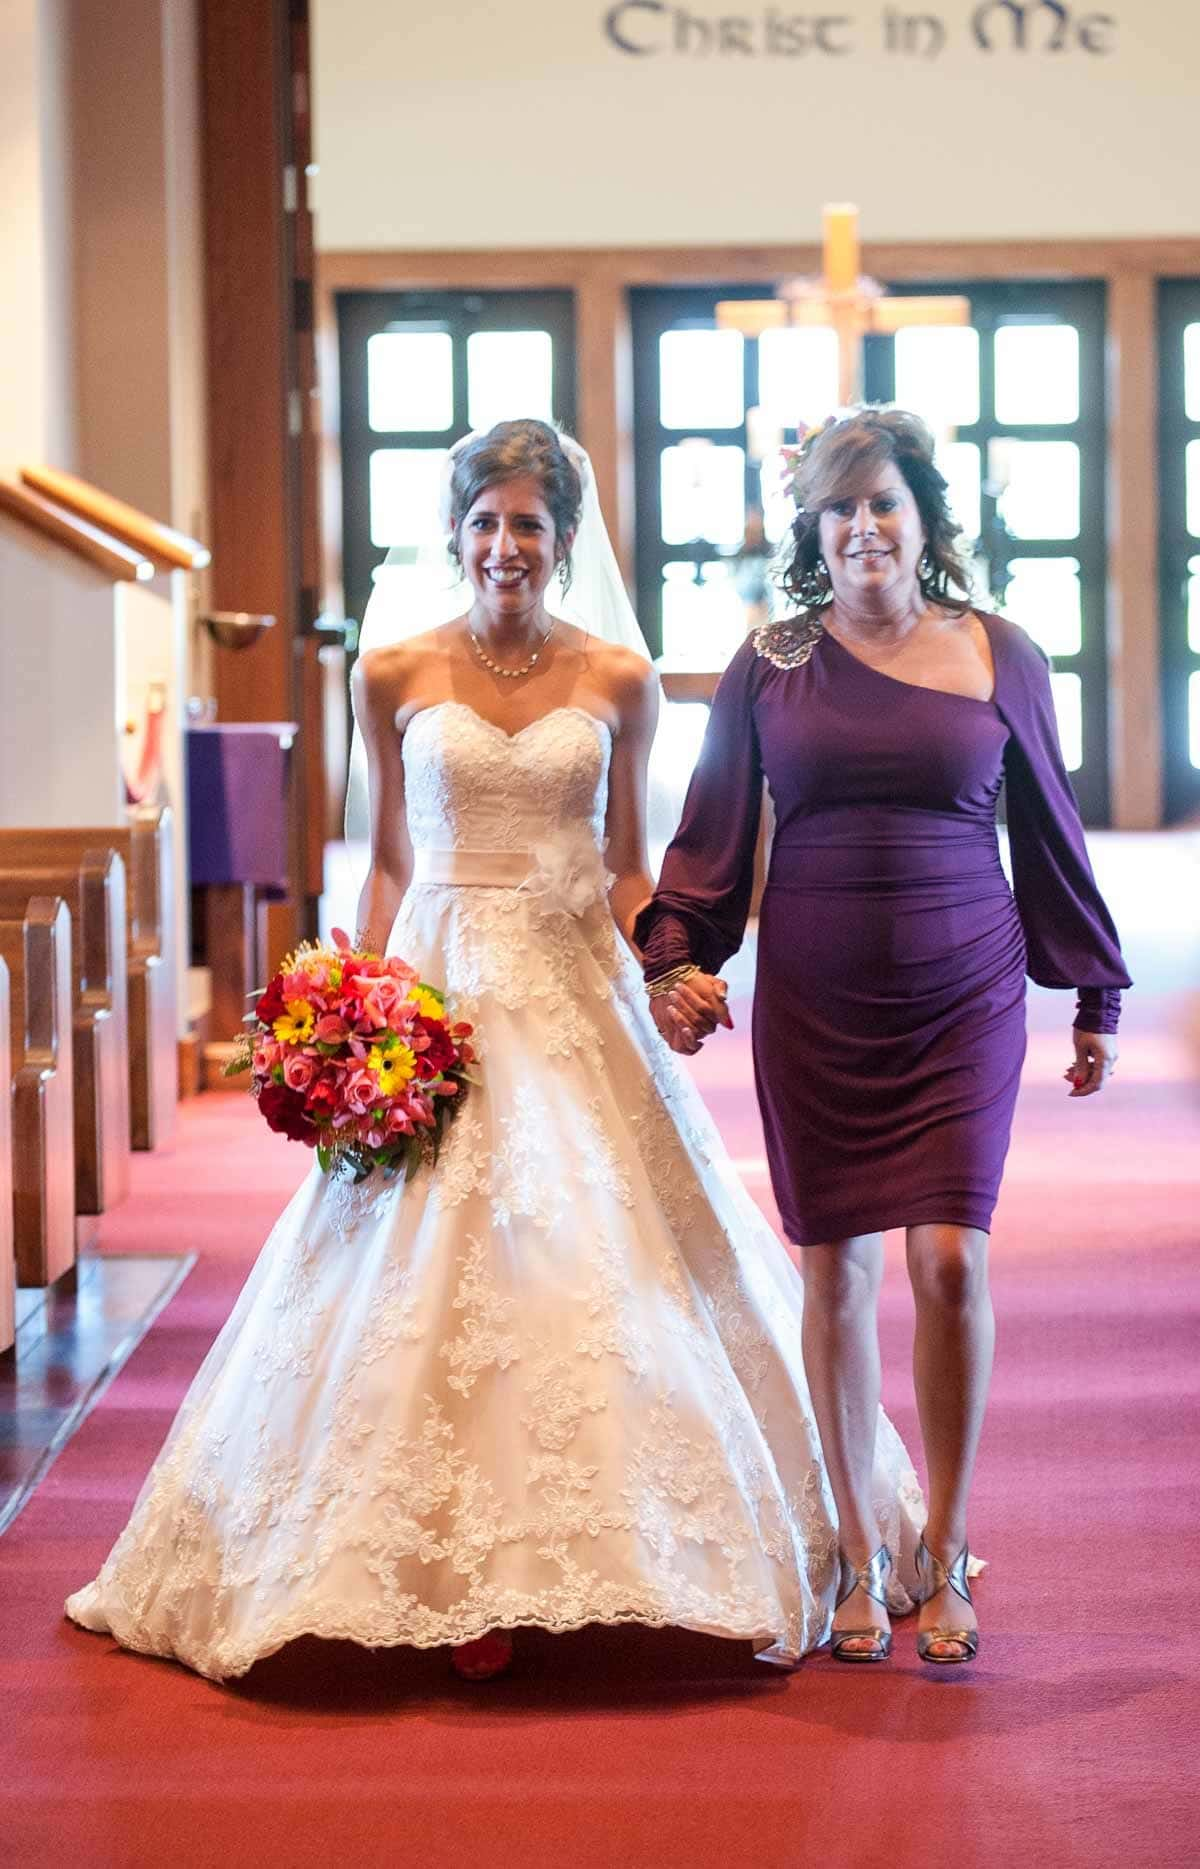 Mom walking daughter down the aisle at wedding.